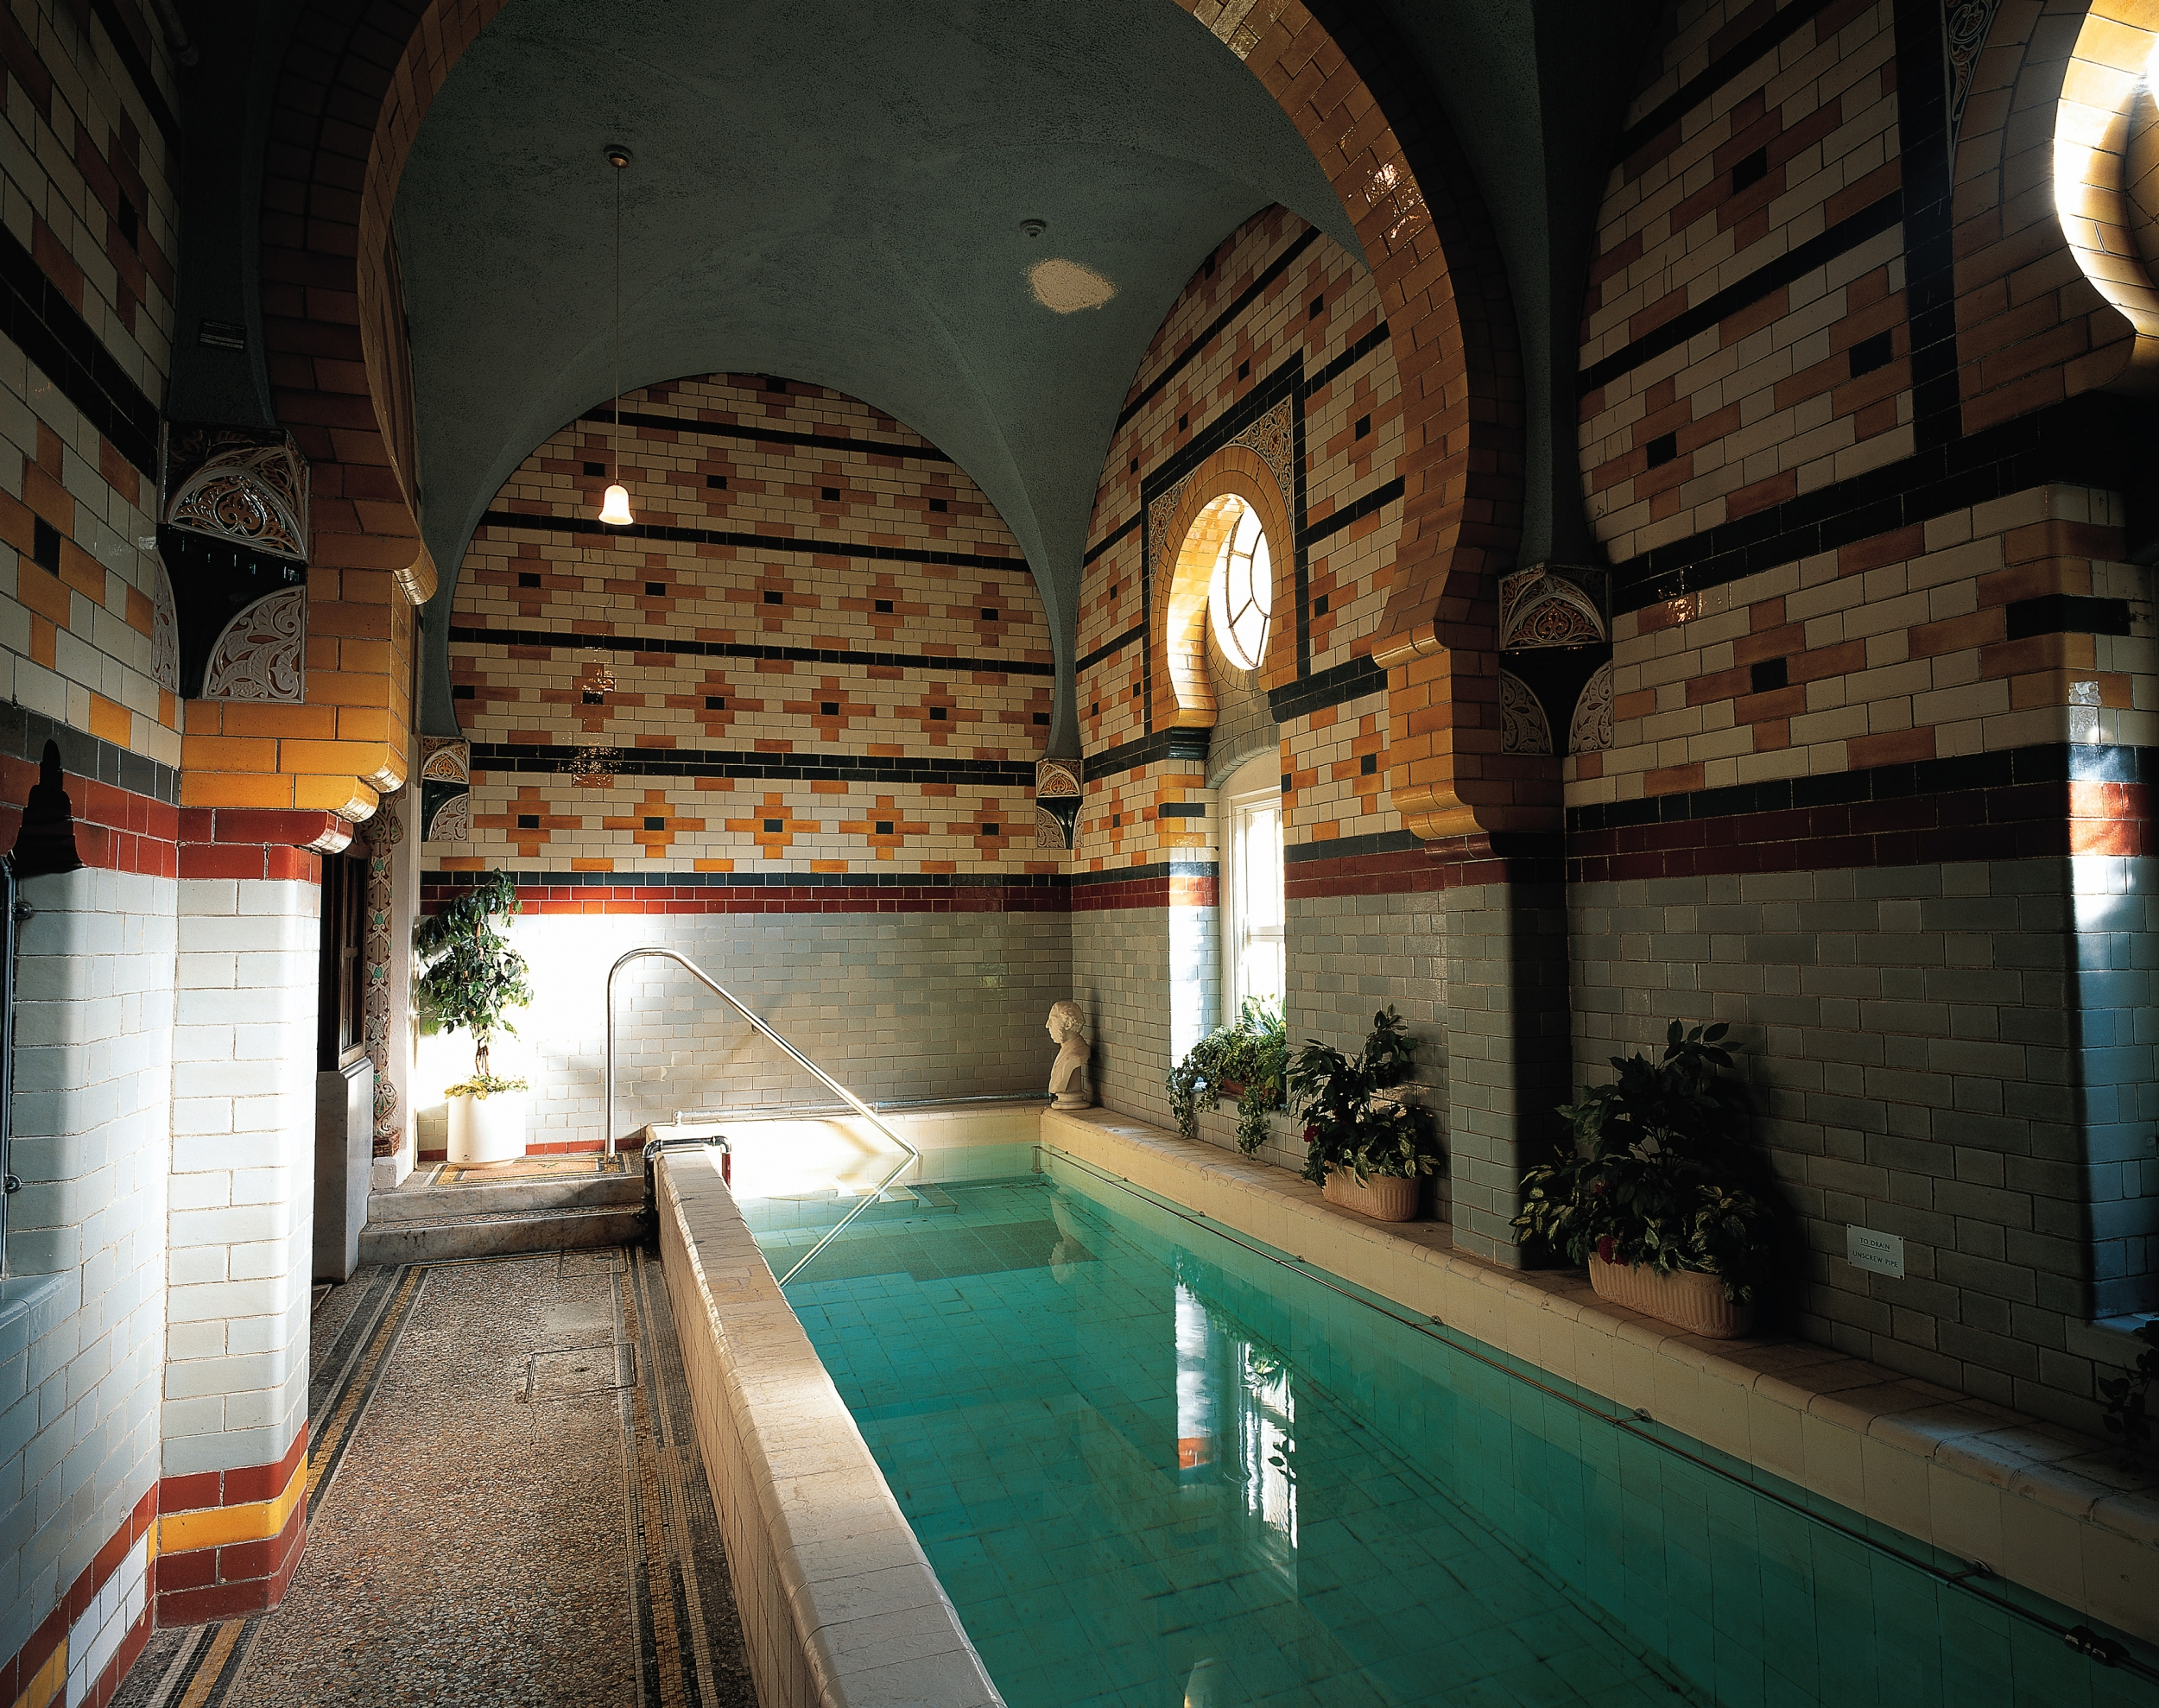 Pamper yourself in style in England | VisitEngland